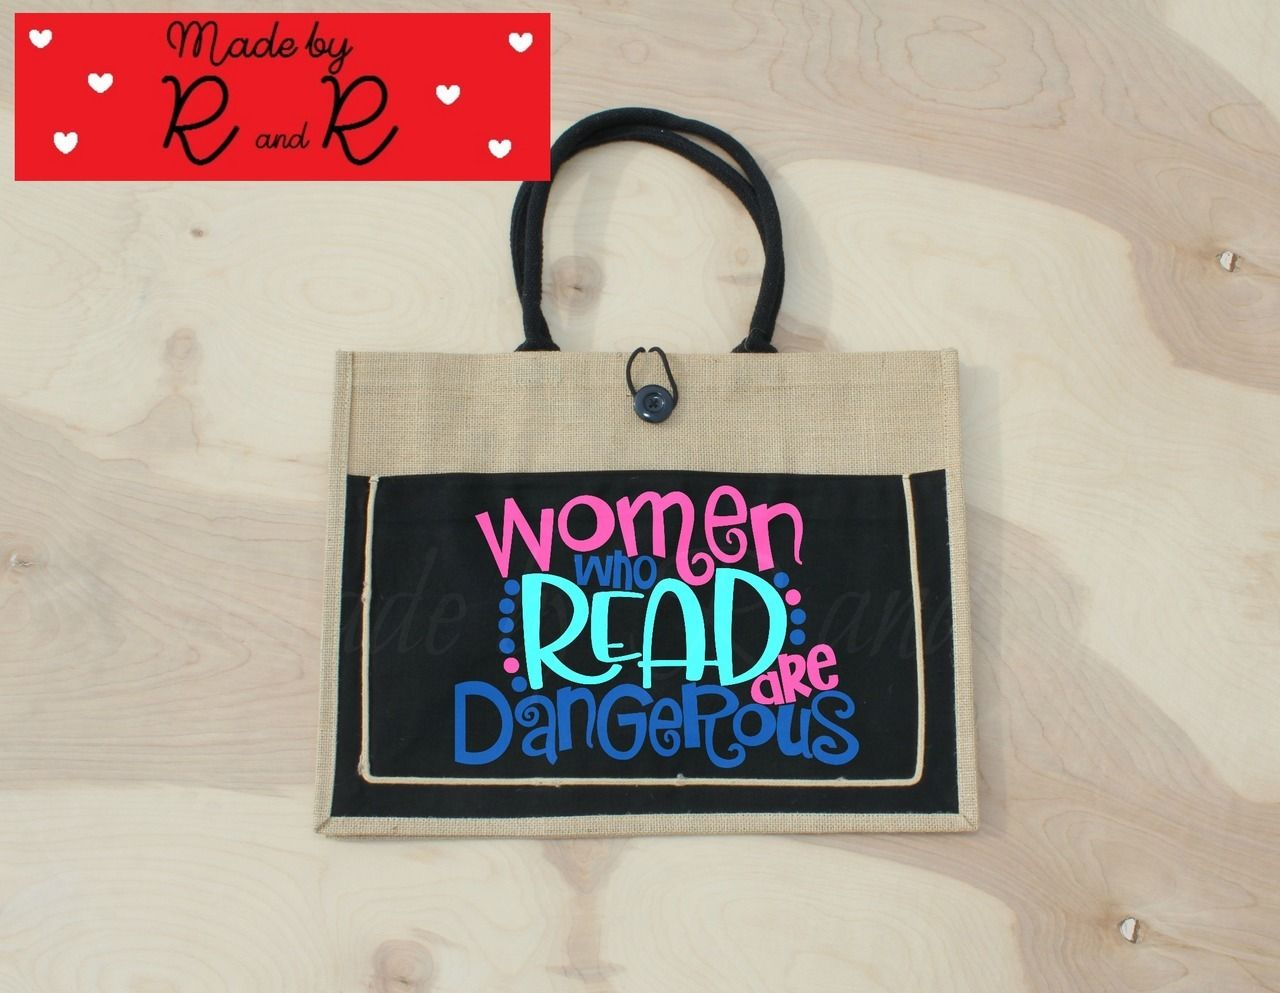 bd9700bcdee52 Women Who Read Are Dangerous Jute Bag | Made by R and R | Bags, Jute ...